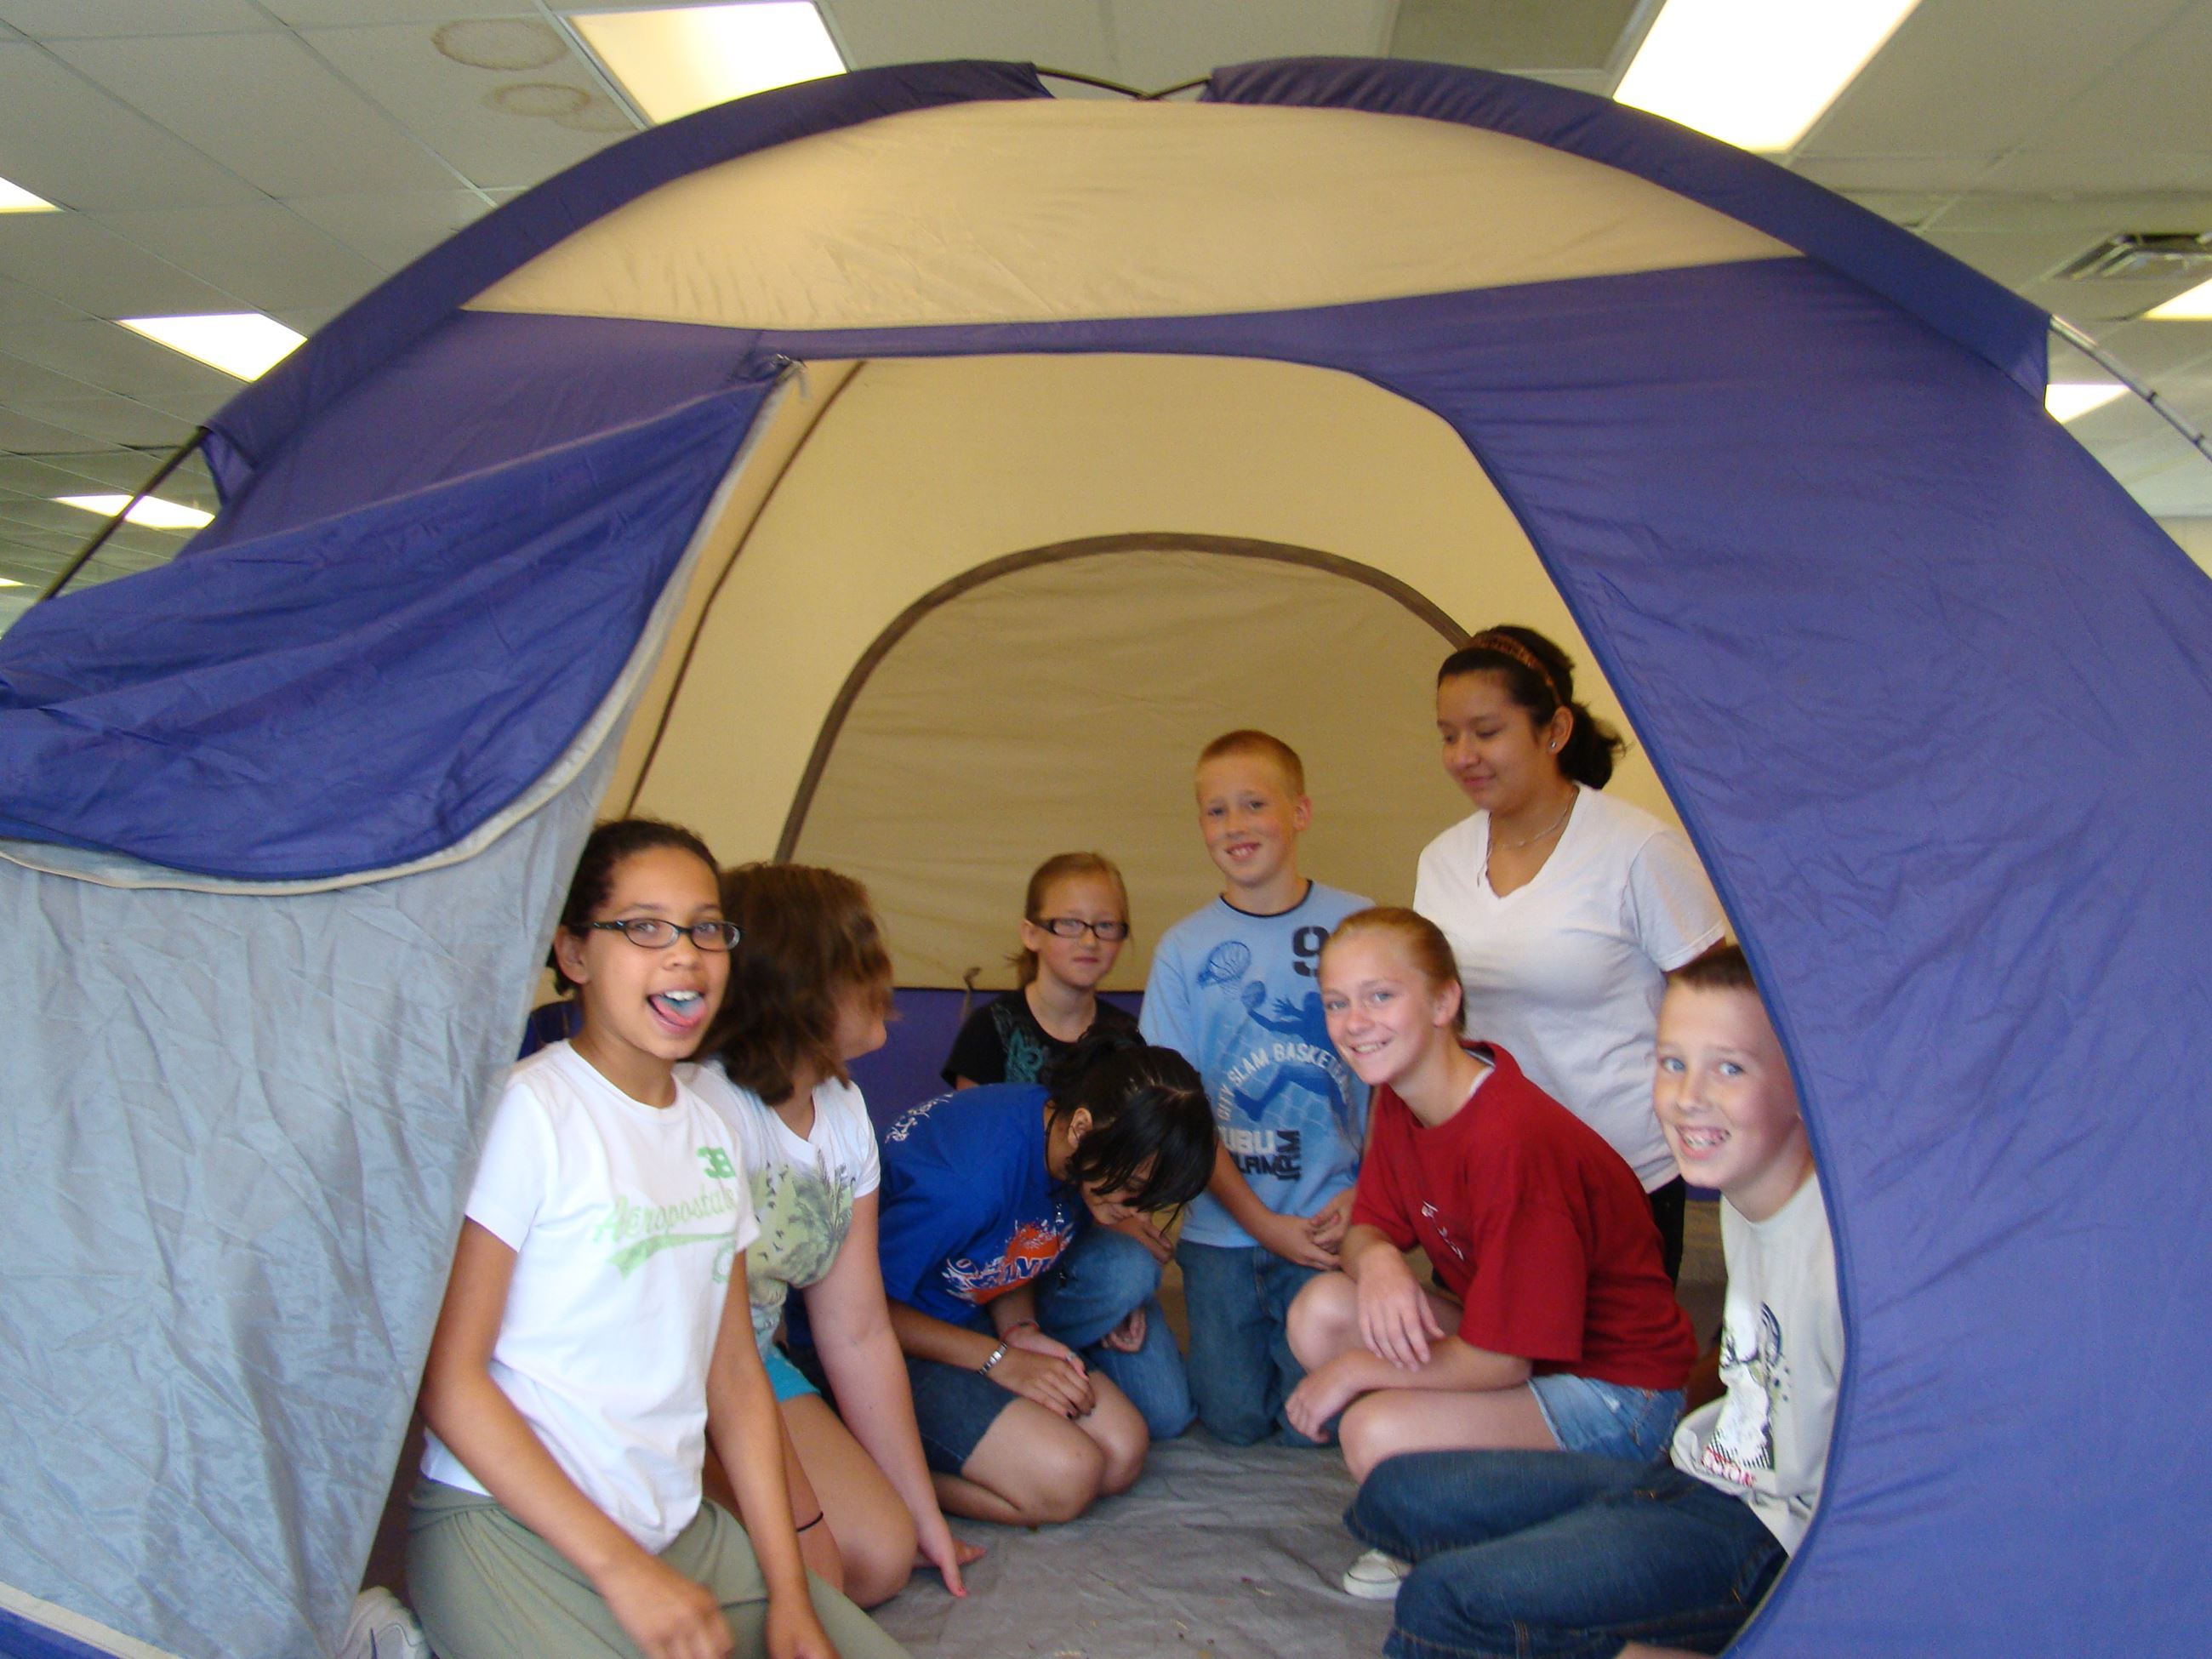 Kids in a tent during camp activities.